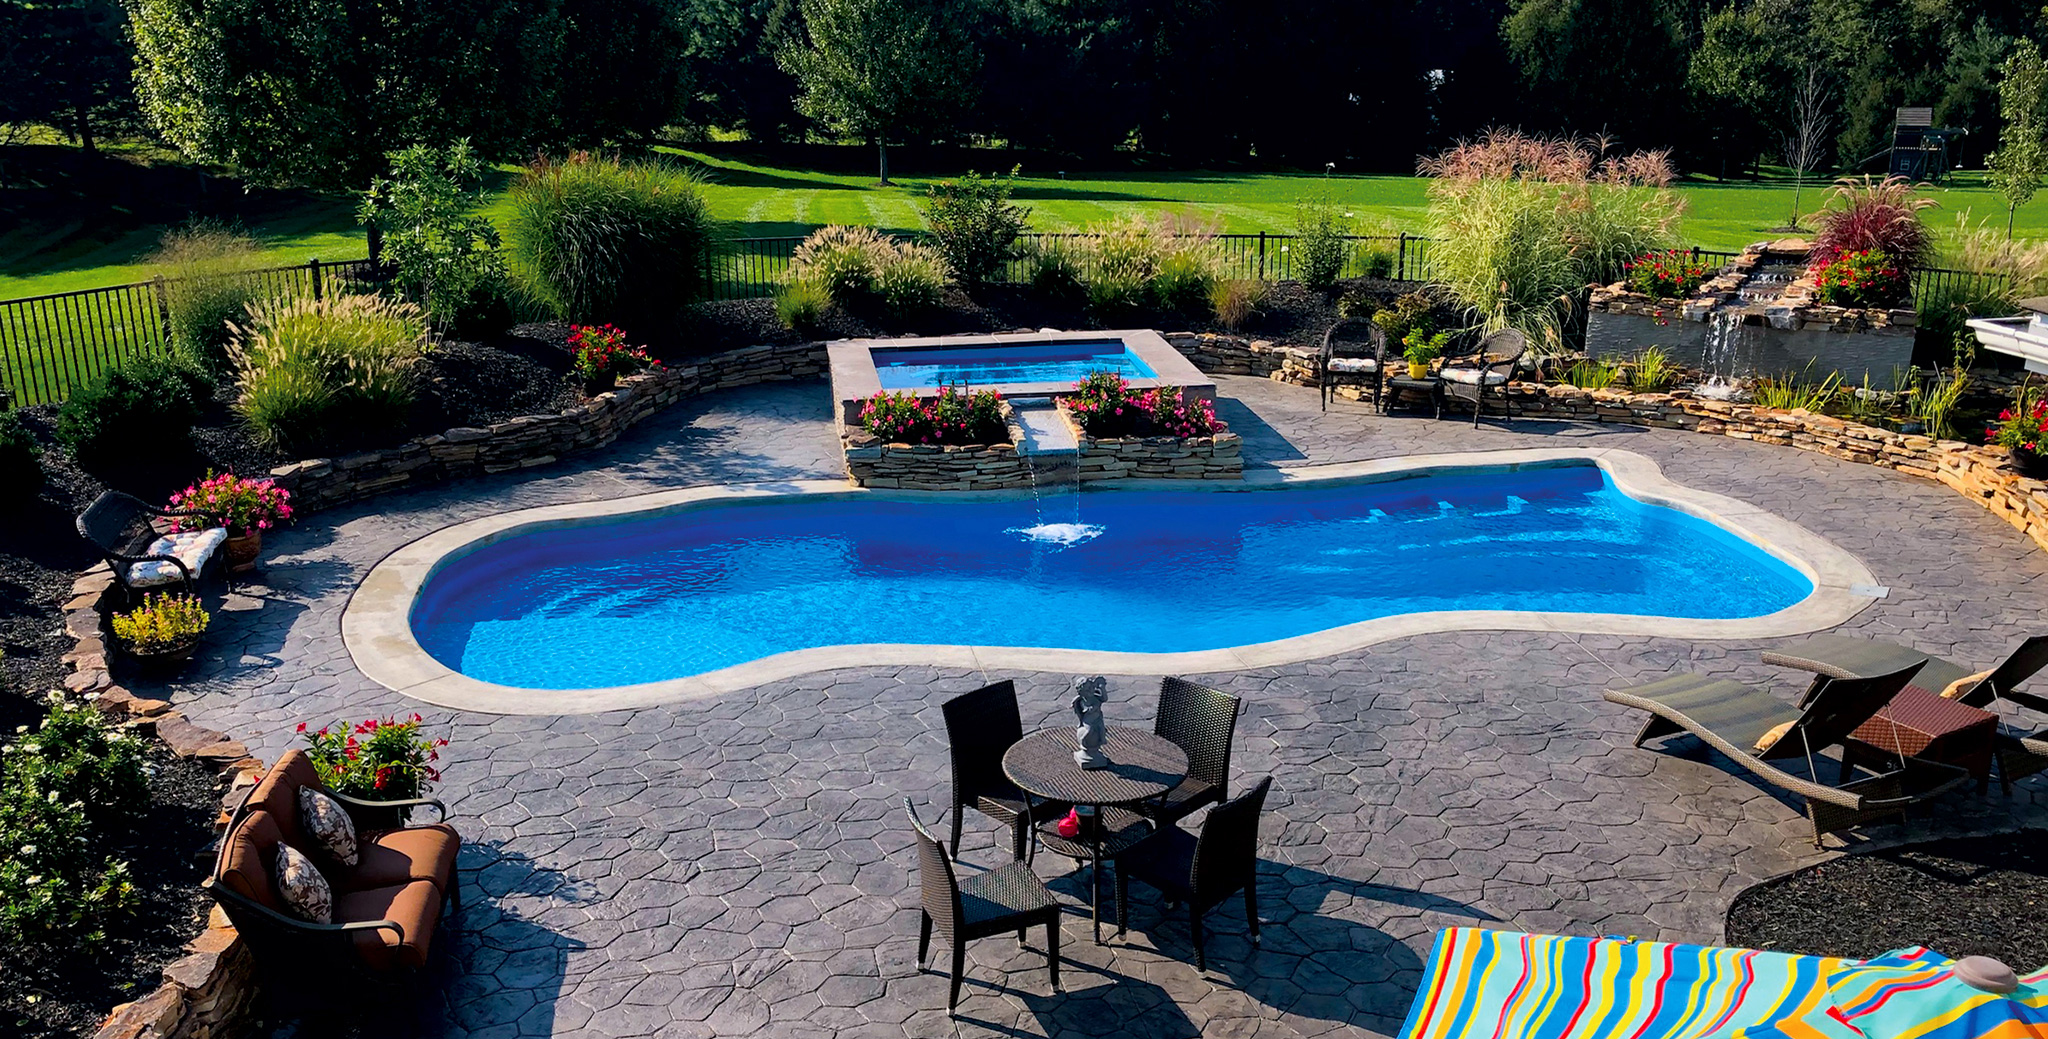 inground fiberglass swimming pool builder near me